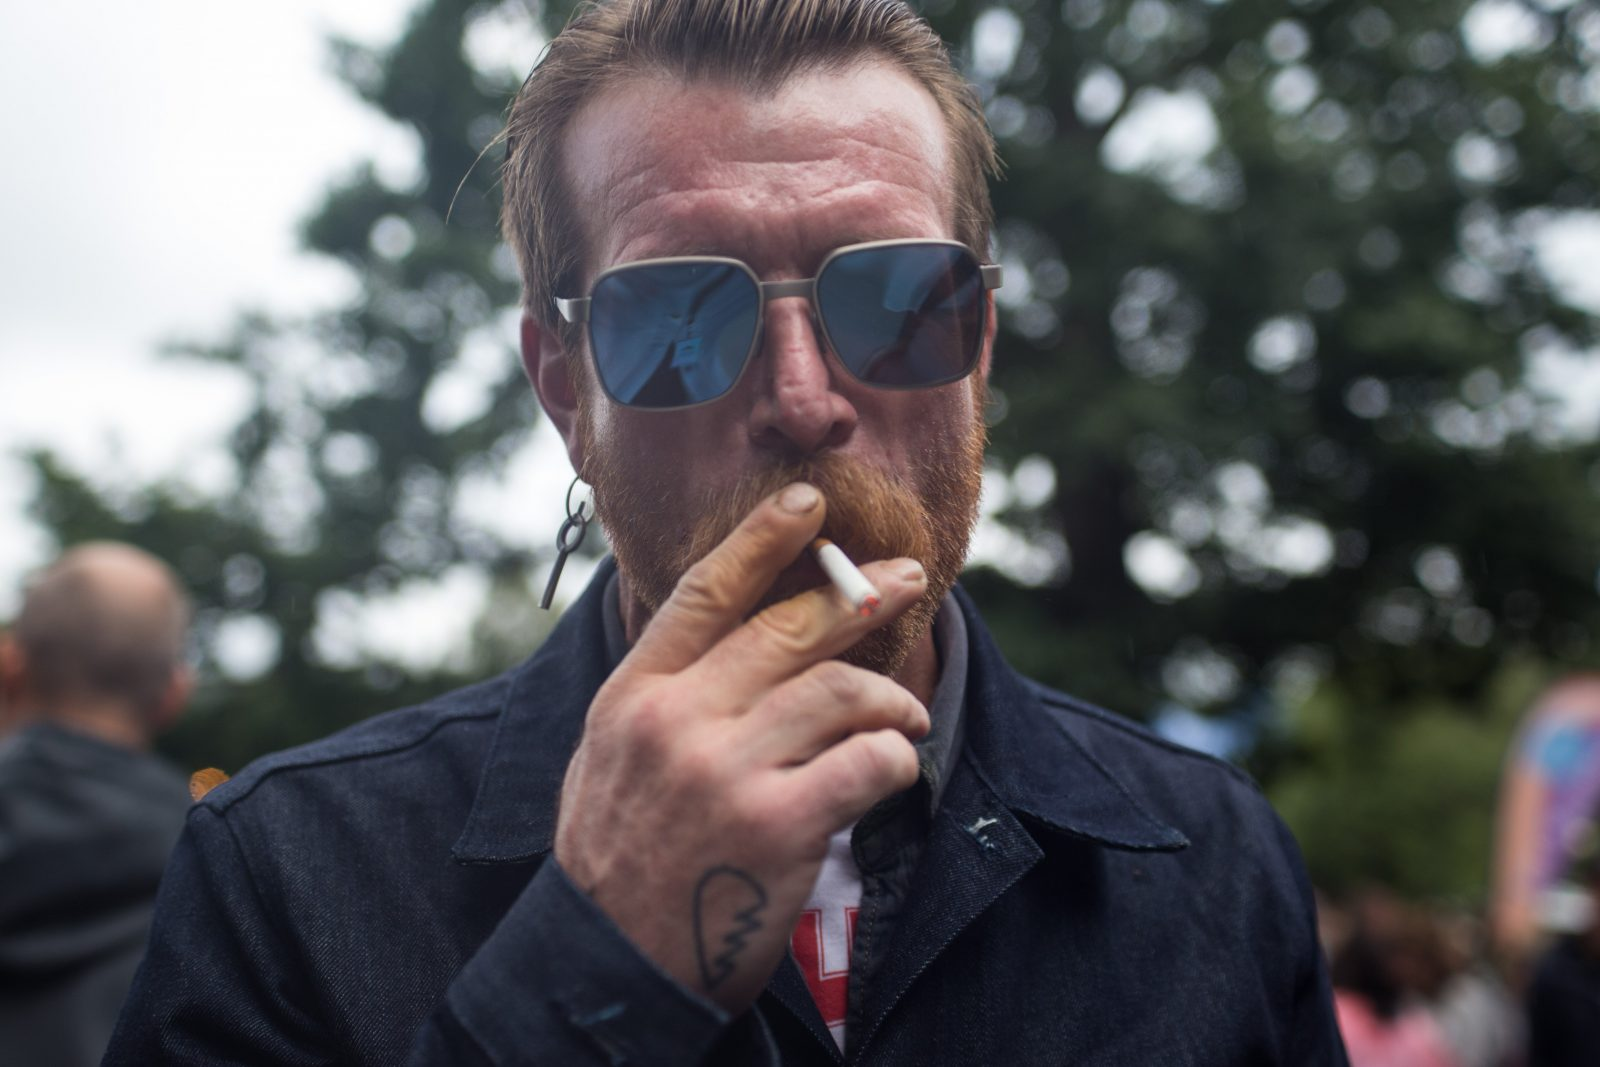 jesse-hughes-eagles-of-death-metal-1